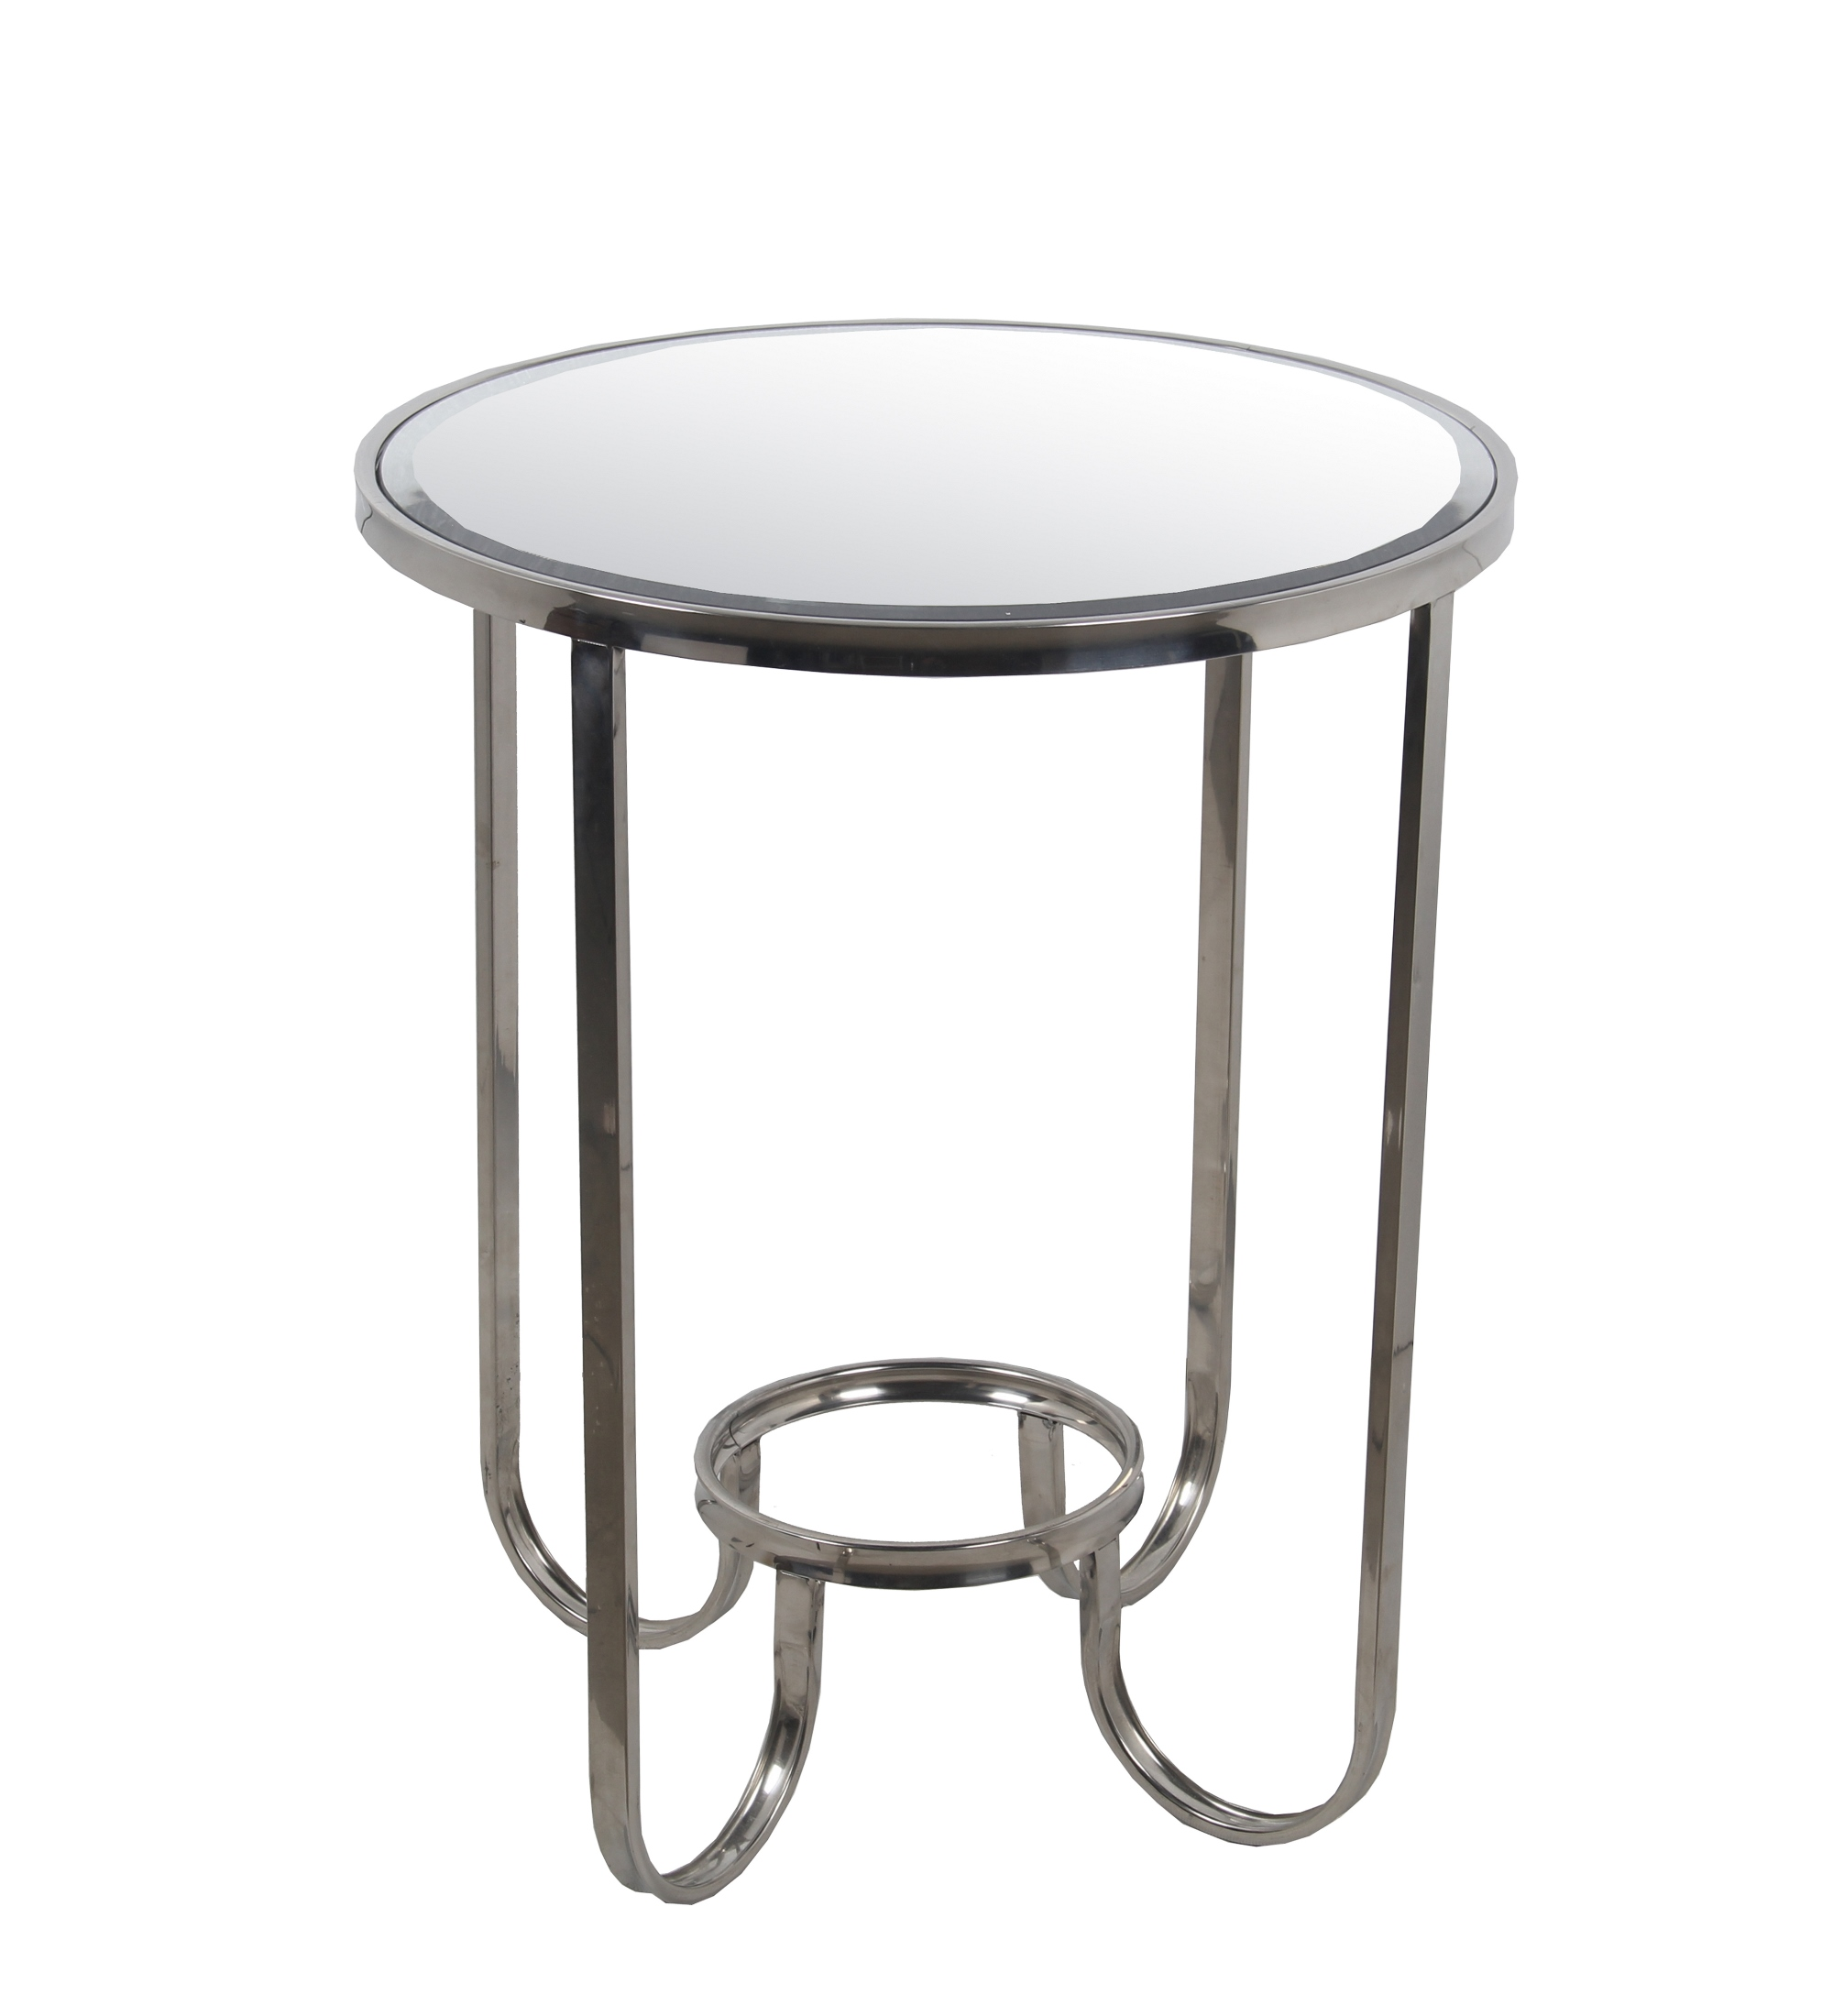 privilege accent table steel contemporary side tables and montrez gold end zeckos nautical furniture ashley rocker recliner queen anne pier one outdoor pillows willow unfinished